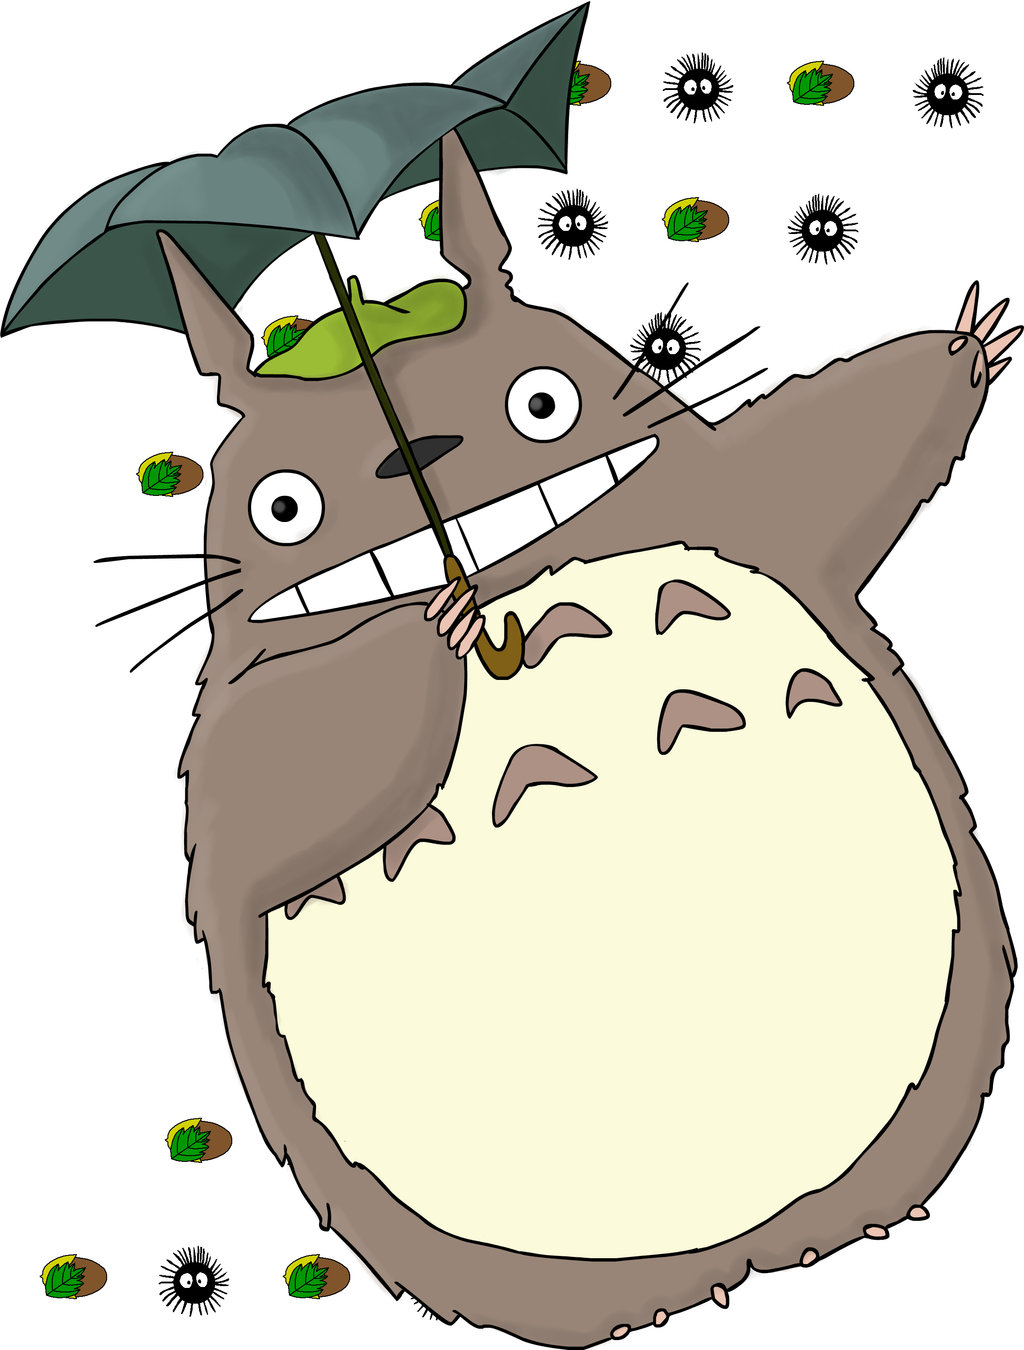 Totoro wallpapers high quality download free - Totoro wallpaper iphone ...